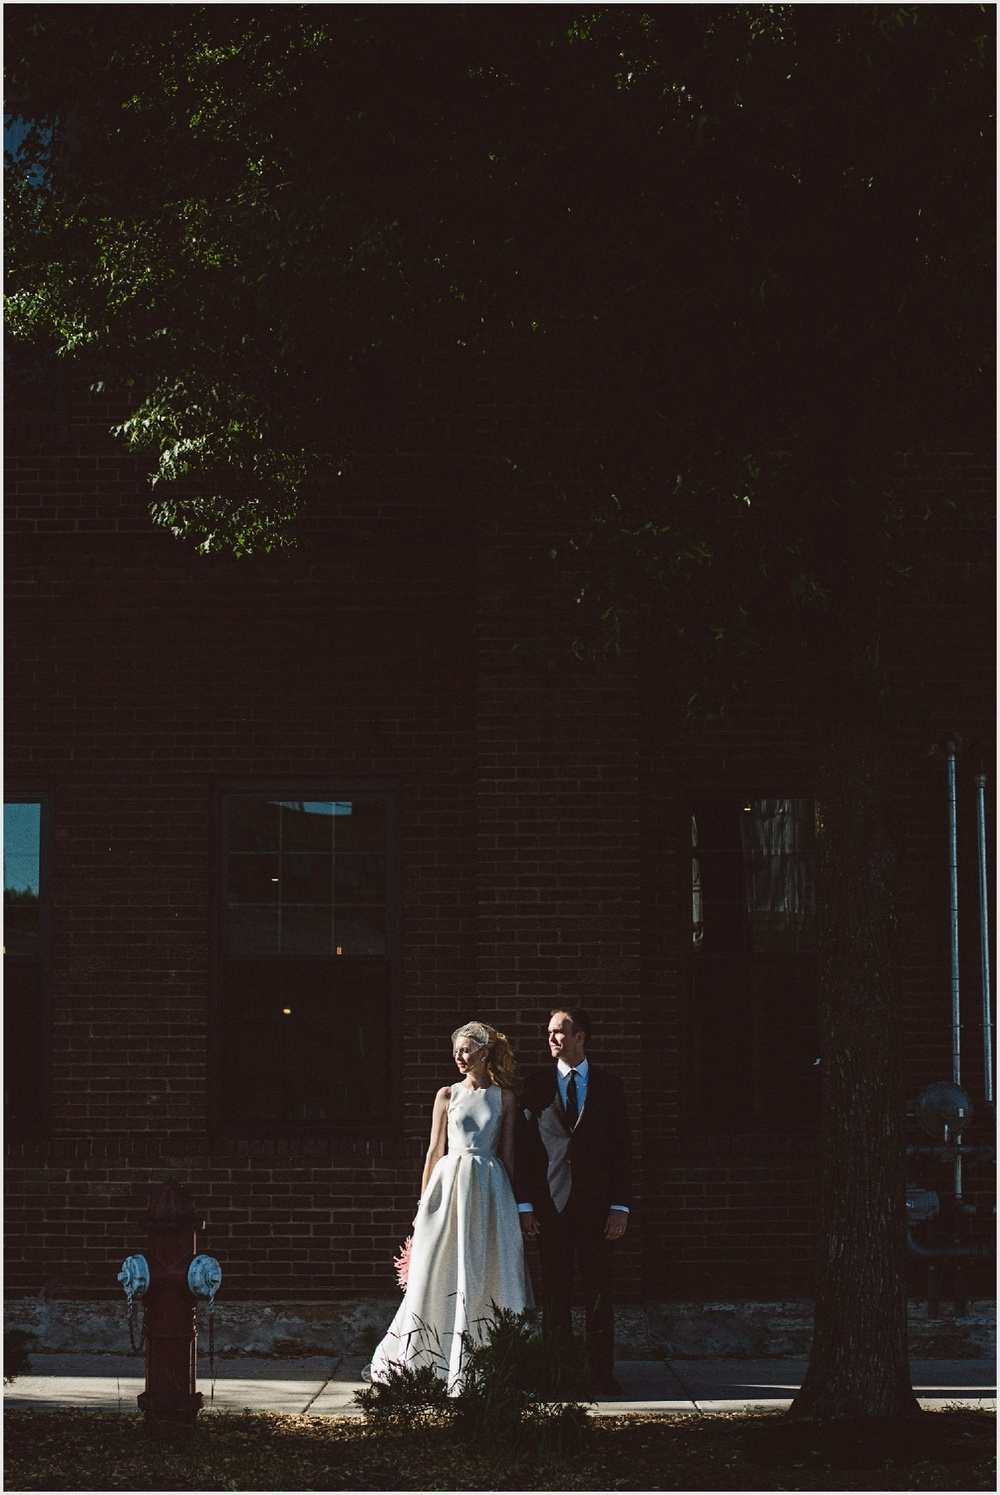 solar_arts_wedding_minneapolis_by_lucas_botz_photography_0050.jpg